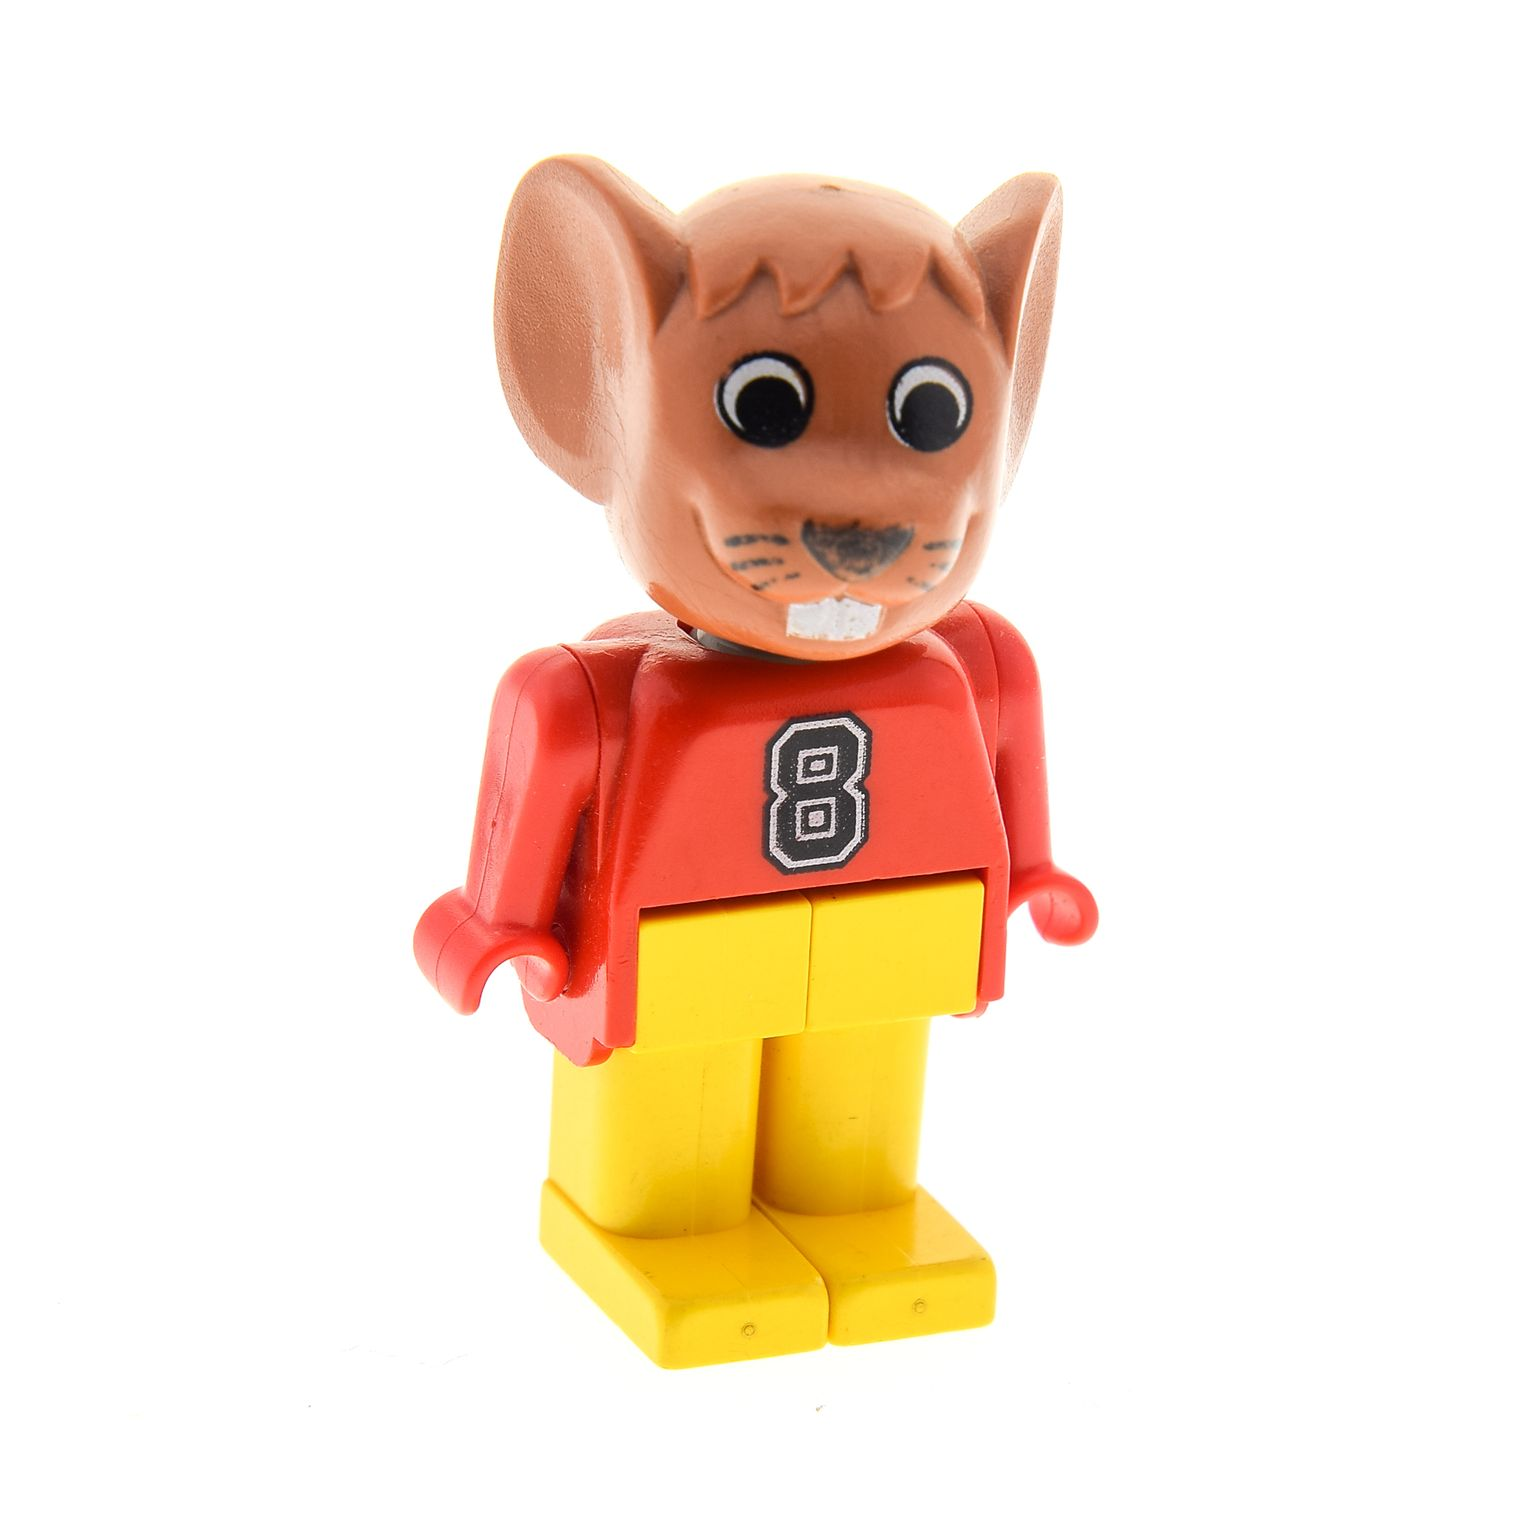 1 X Lego Brick Fabuland Figure Mouse 2 Maxi Brown Red Printed Whit 8